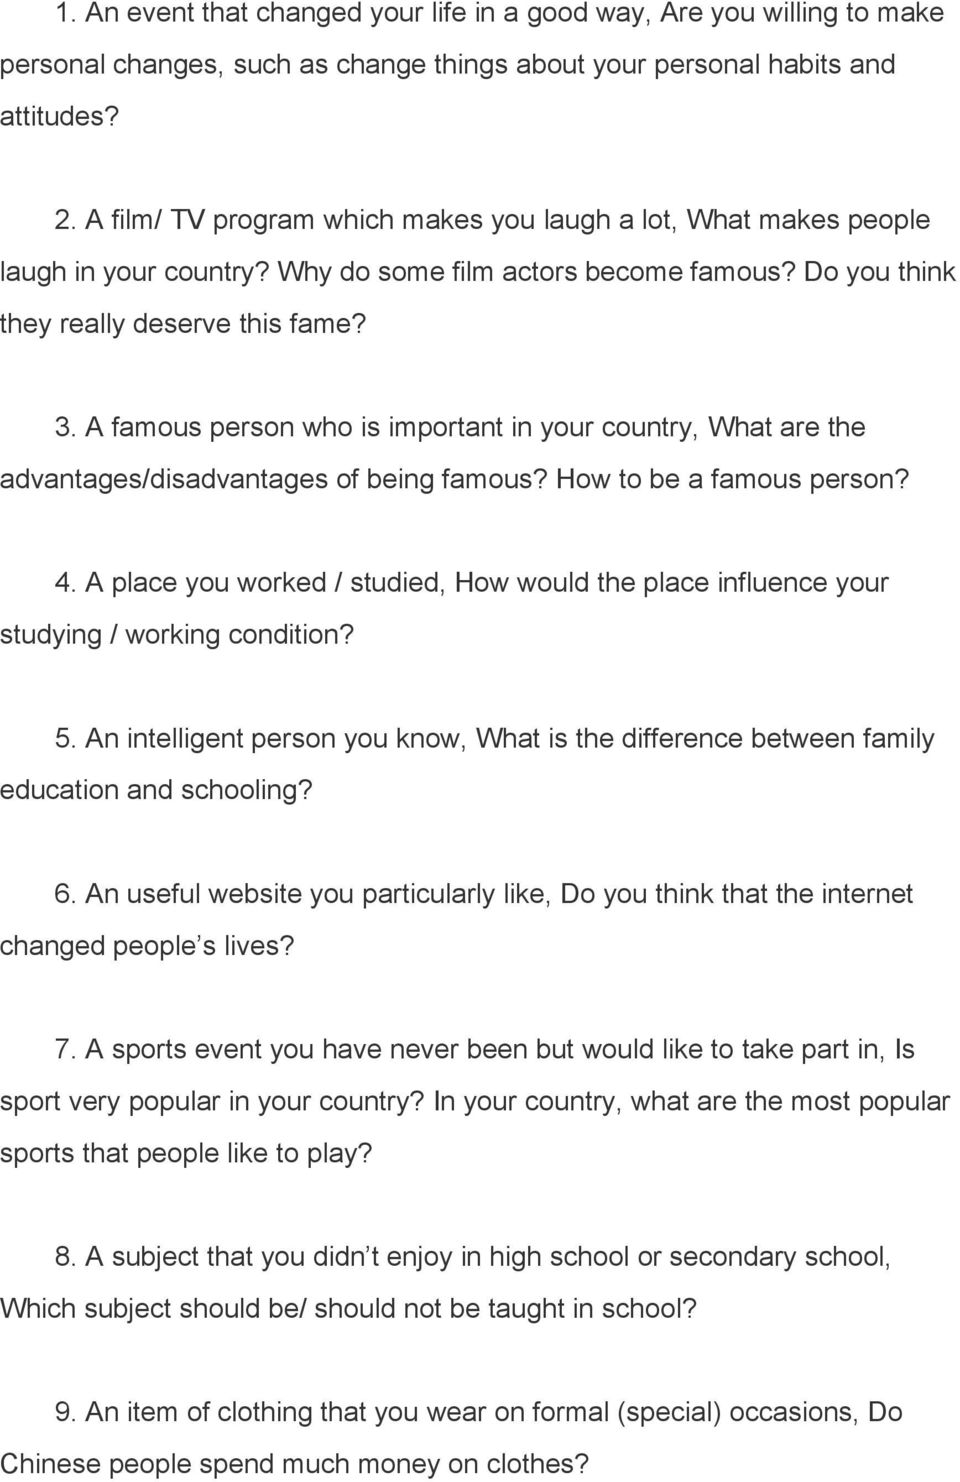 A famous person who is important in your country, What are the advantages/disadvantages of being famous? How to be a famous person? 4.